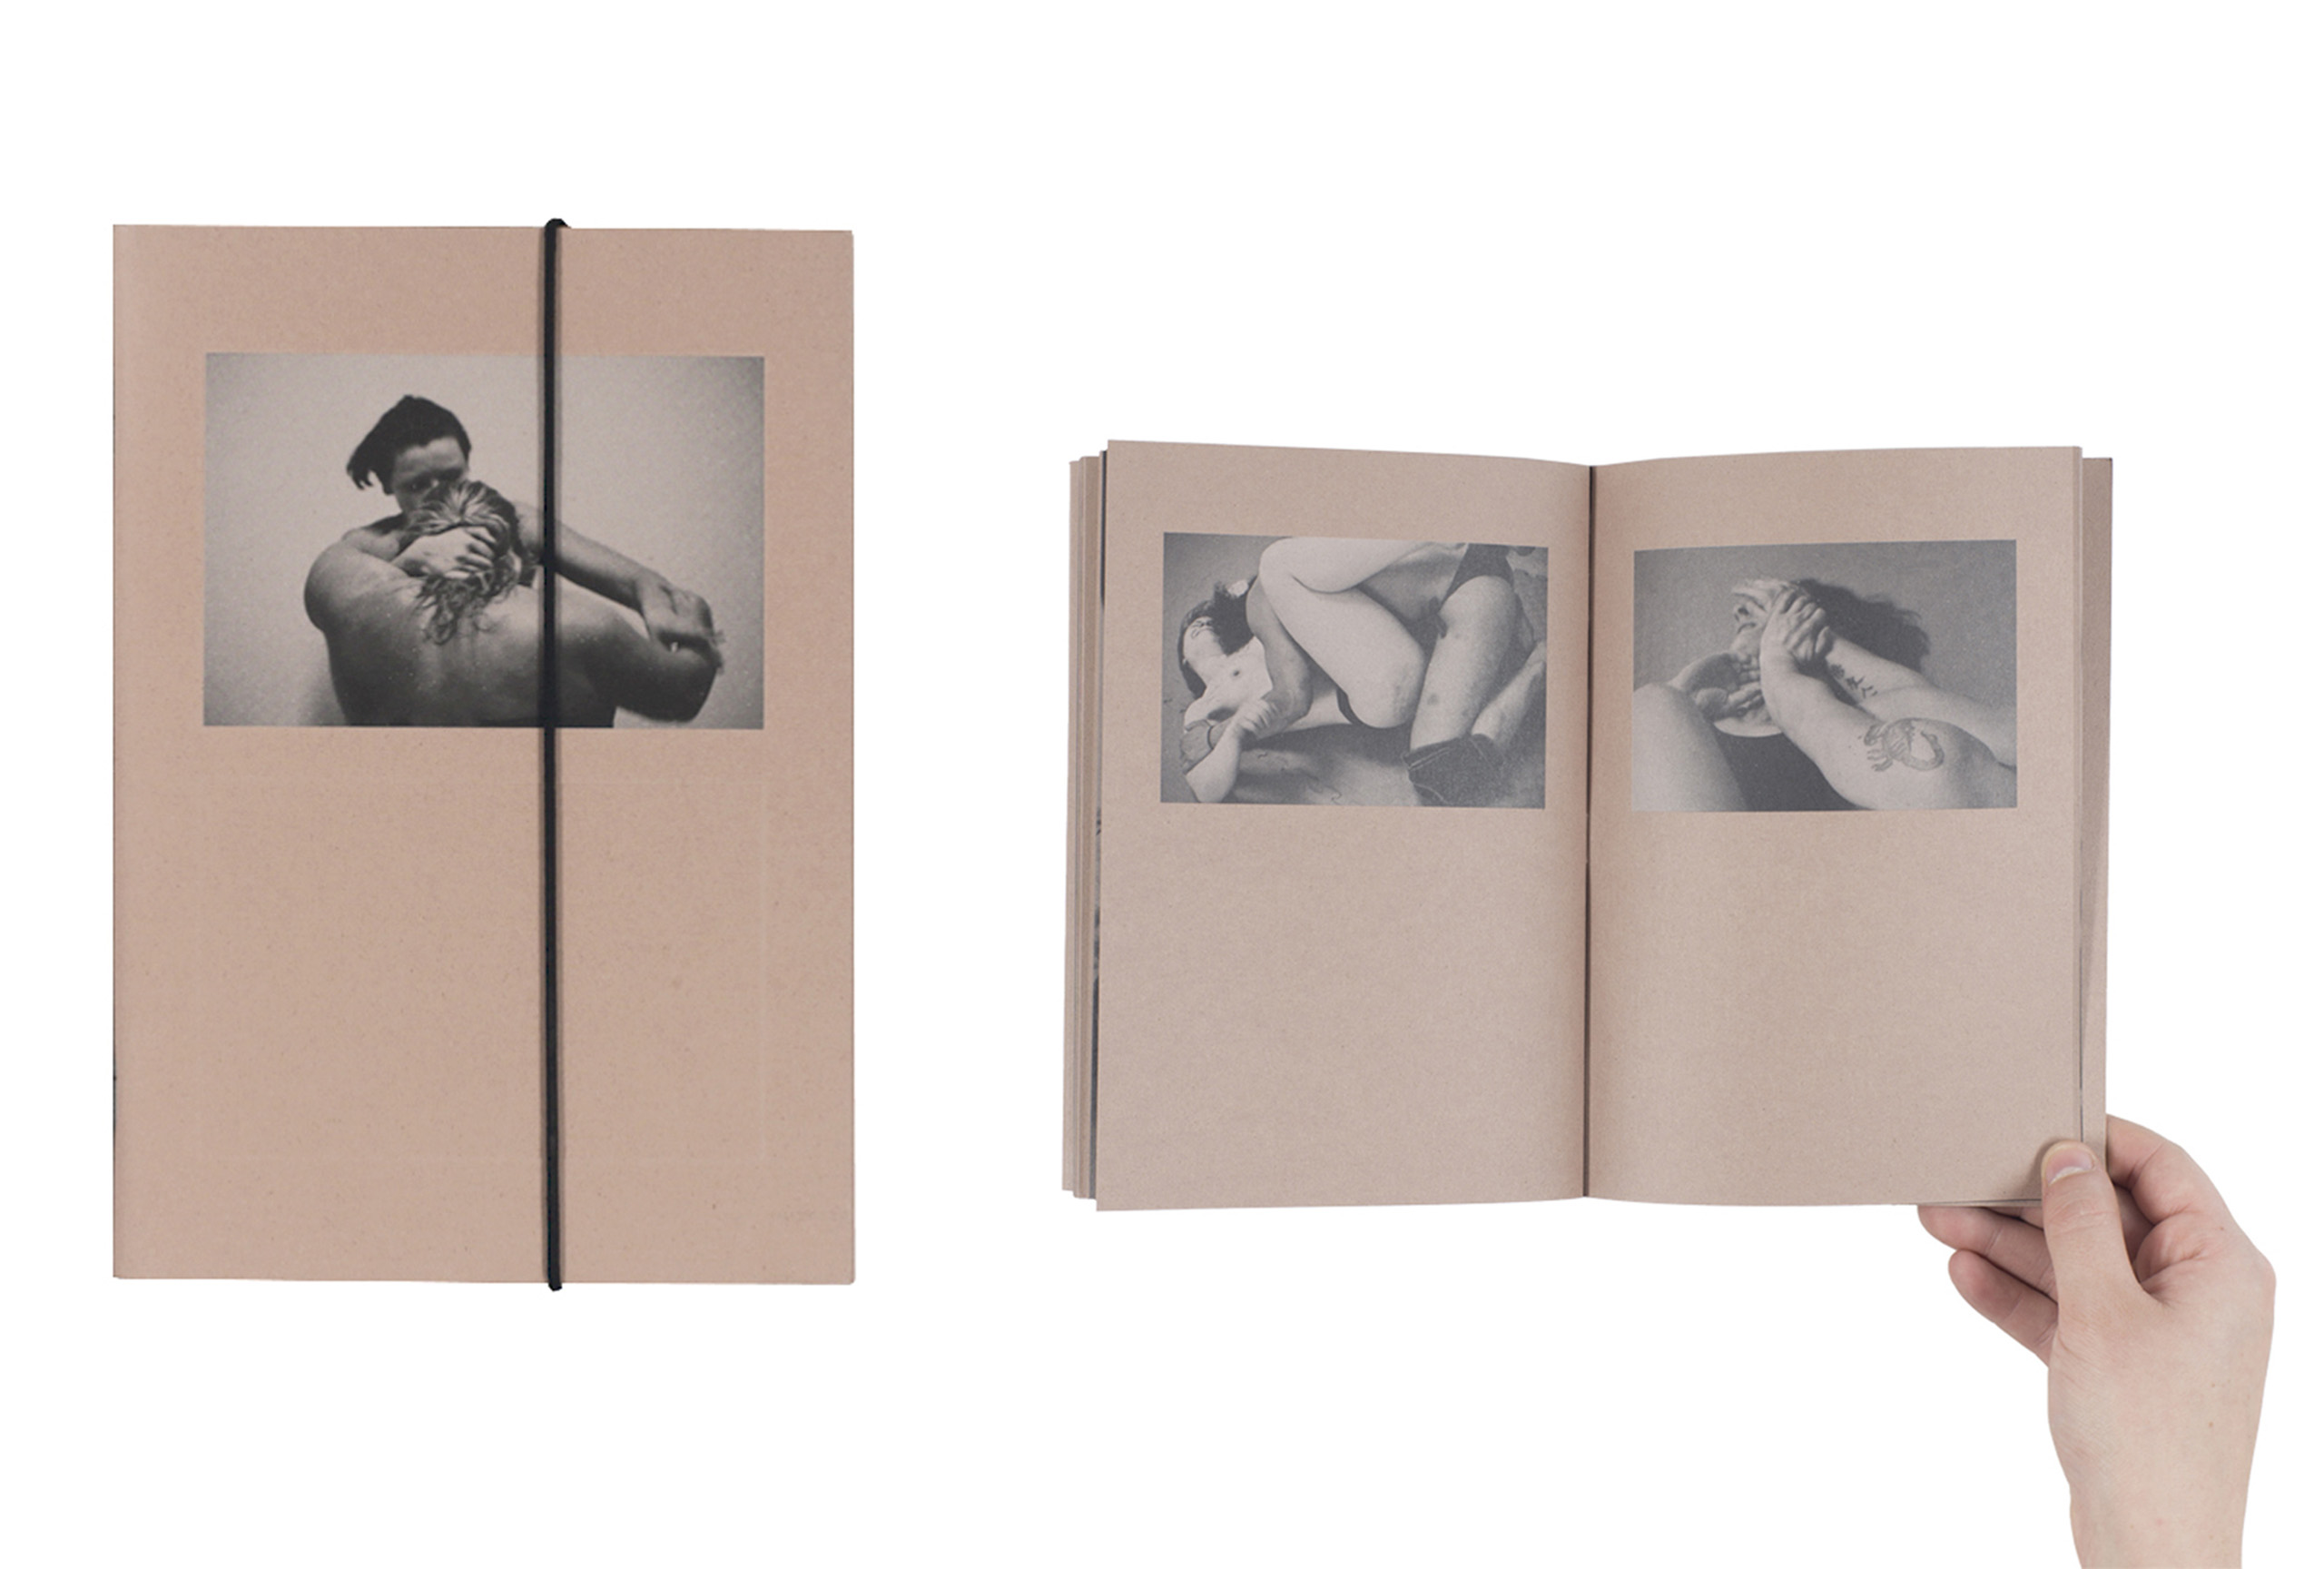 Anna Konda by Katarzyna Mazur, published by dienacht Publishing. Short-listed title for First PhotoBook.